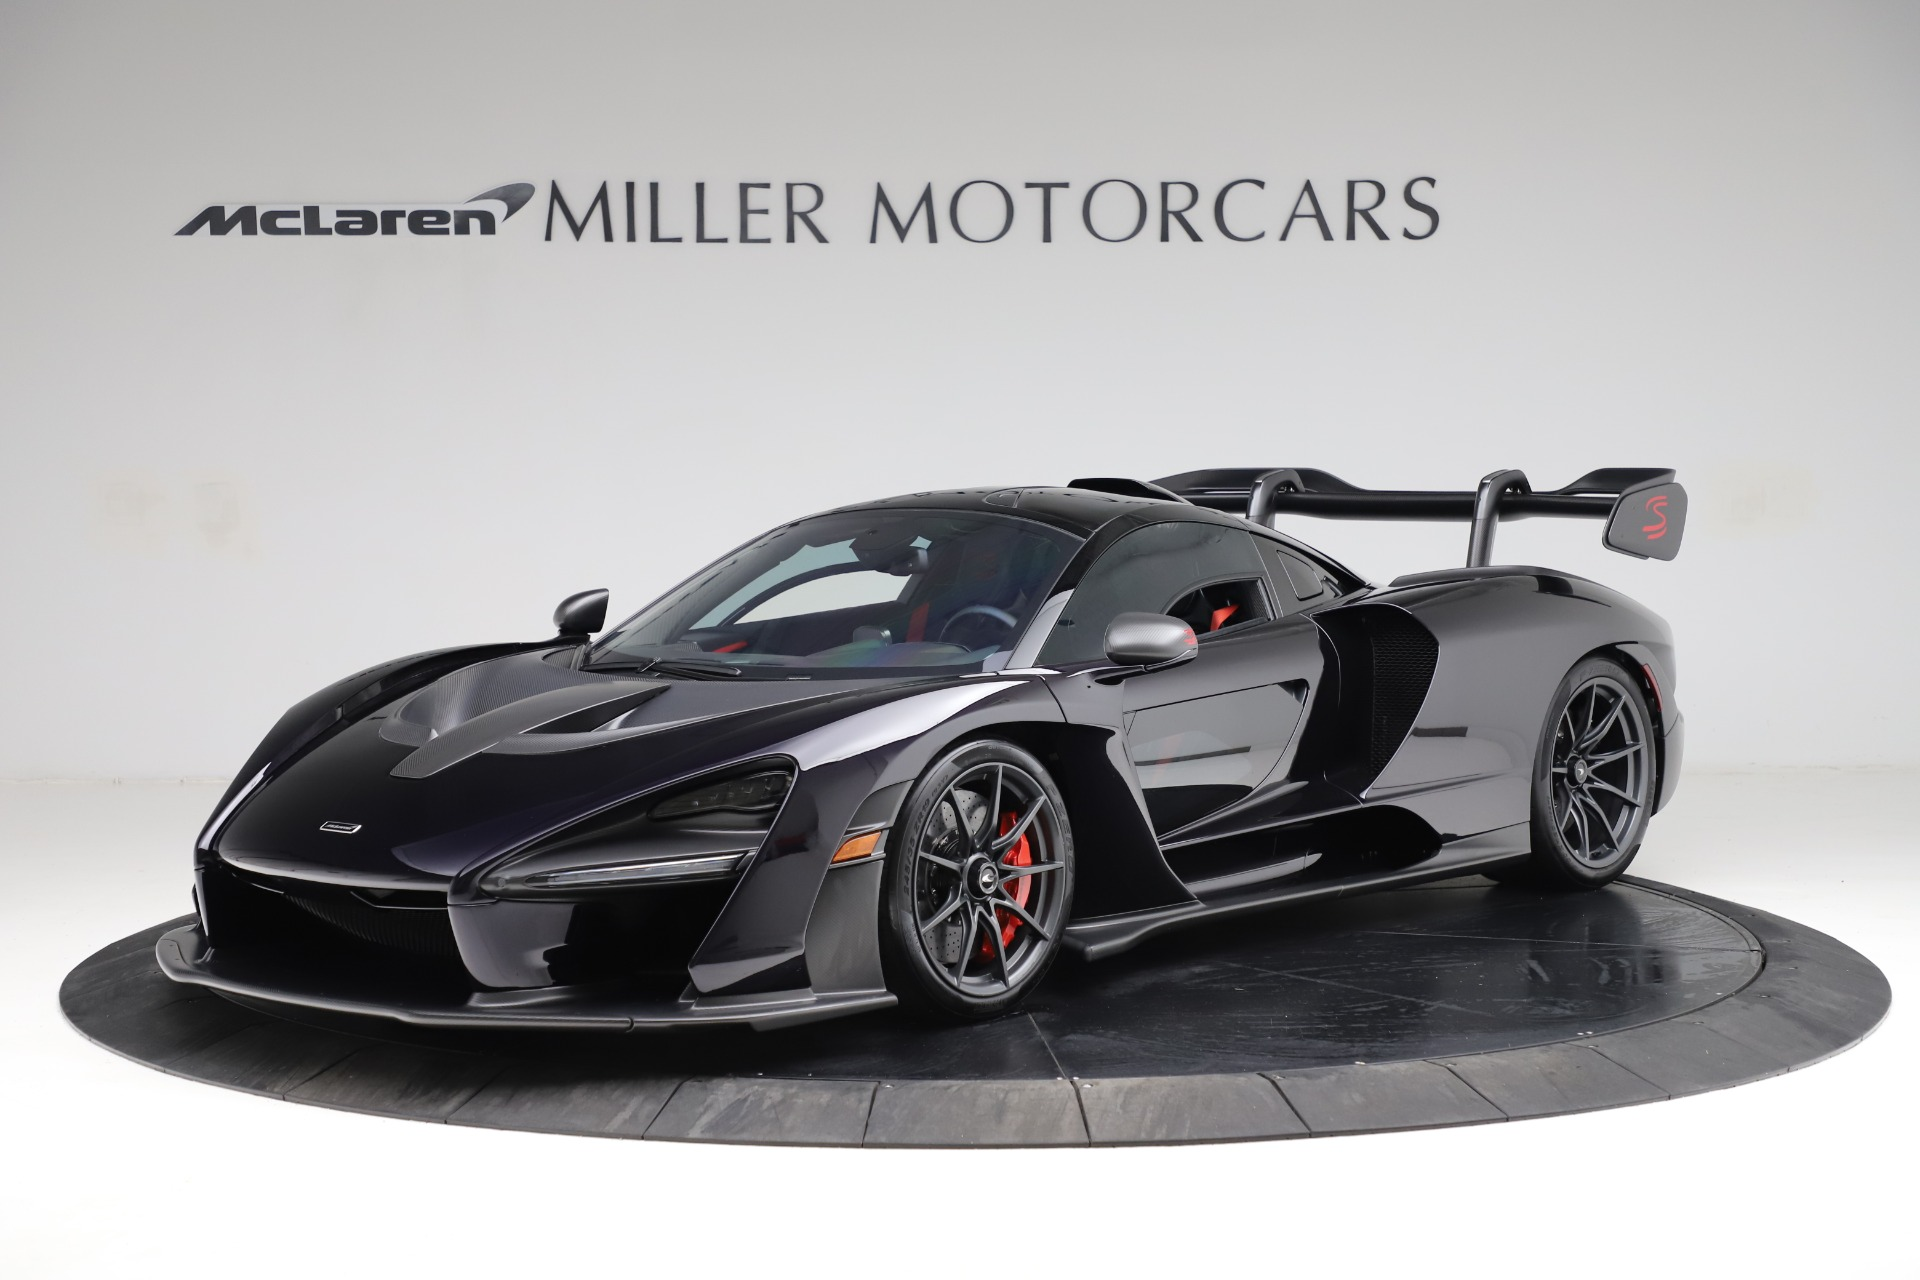 Used 2019 McLaren Senna for sale $1,195,000 at Bentley Greenwich in Greenwich CT 06830 1